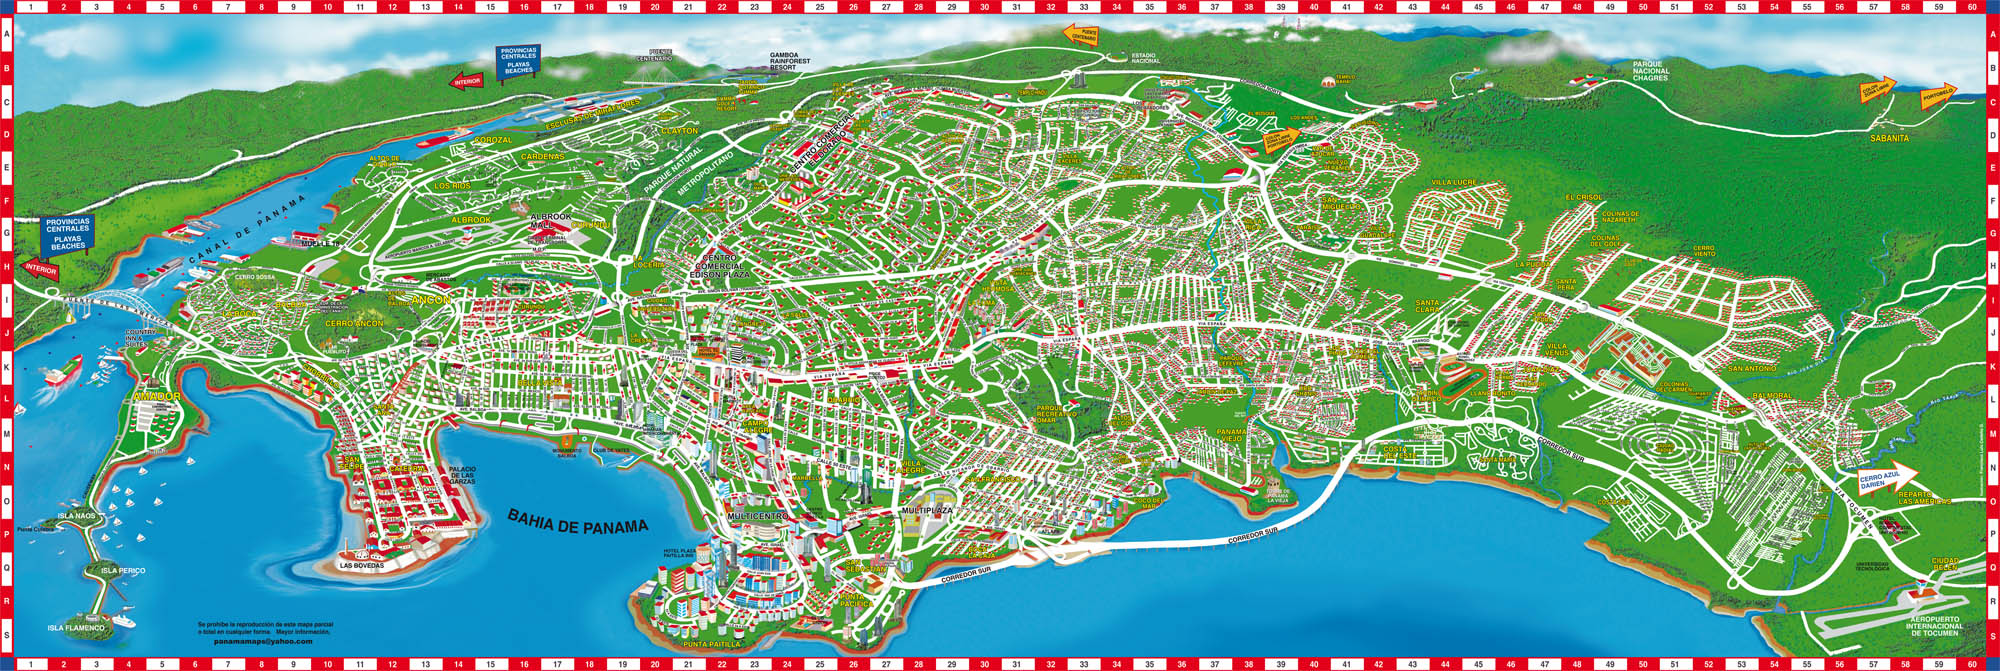 casco viejo panama city with Maps on Catedral further Panama also Panama likewise Panama Overview in addition Panama City Old Town.